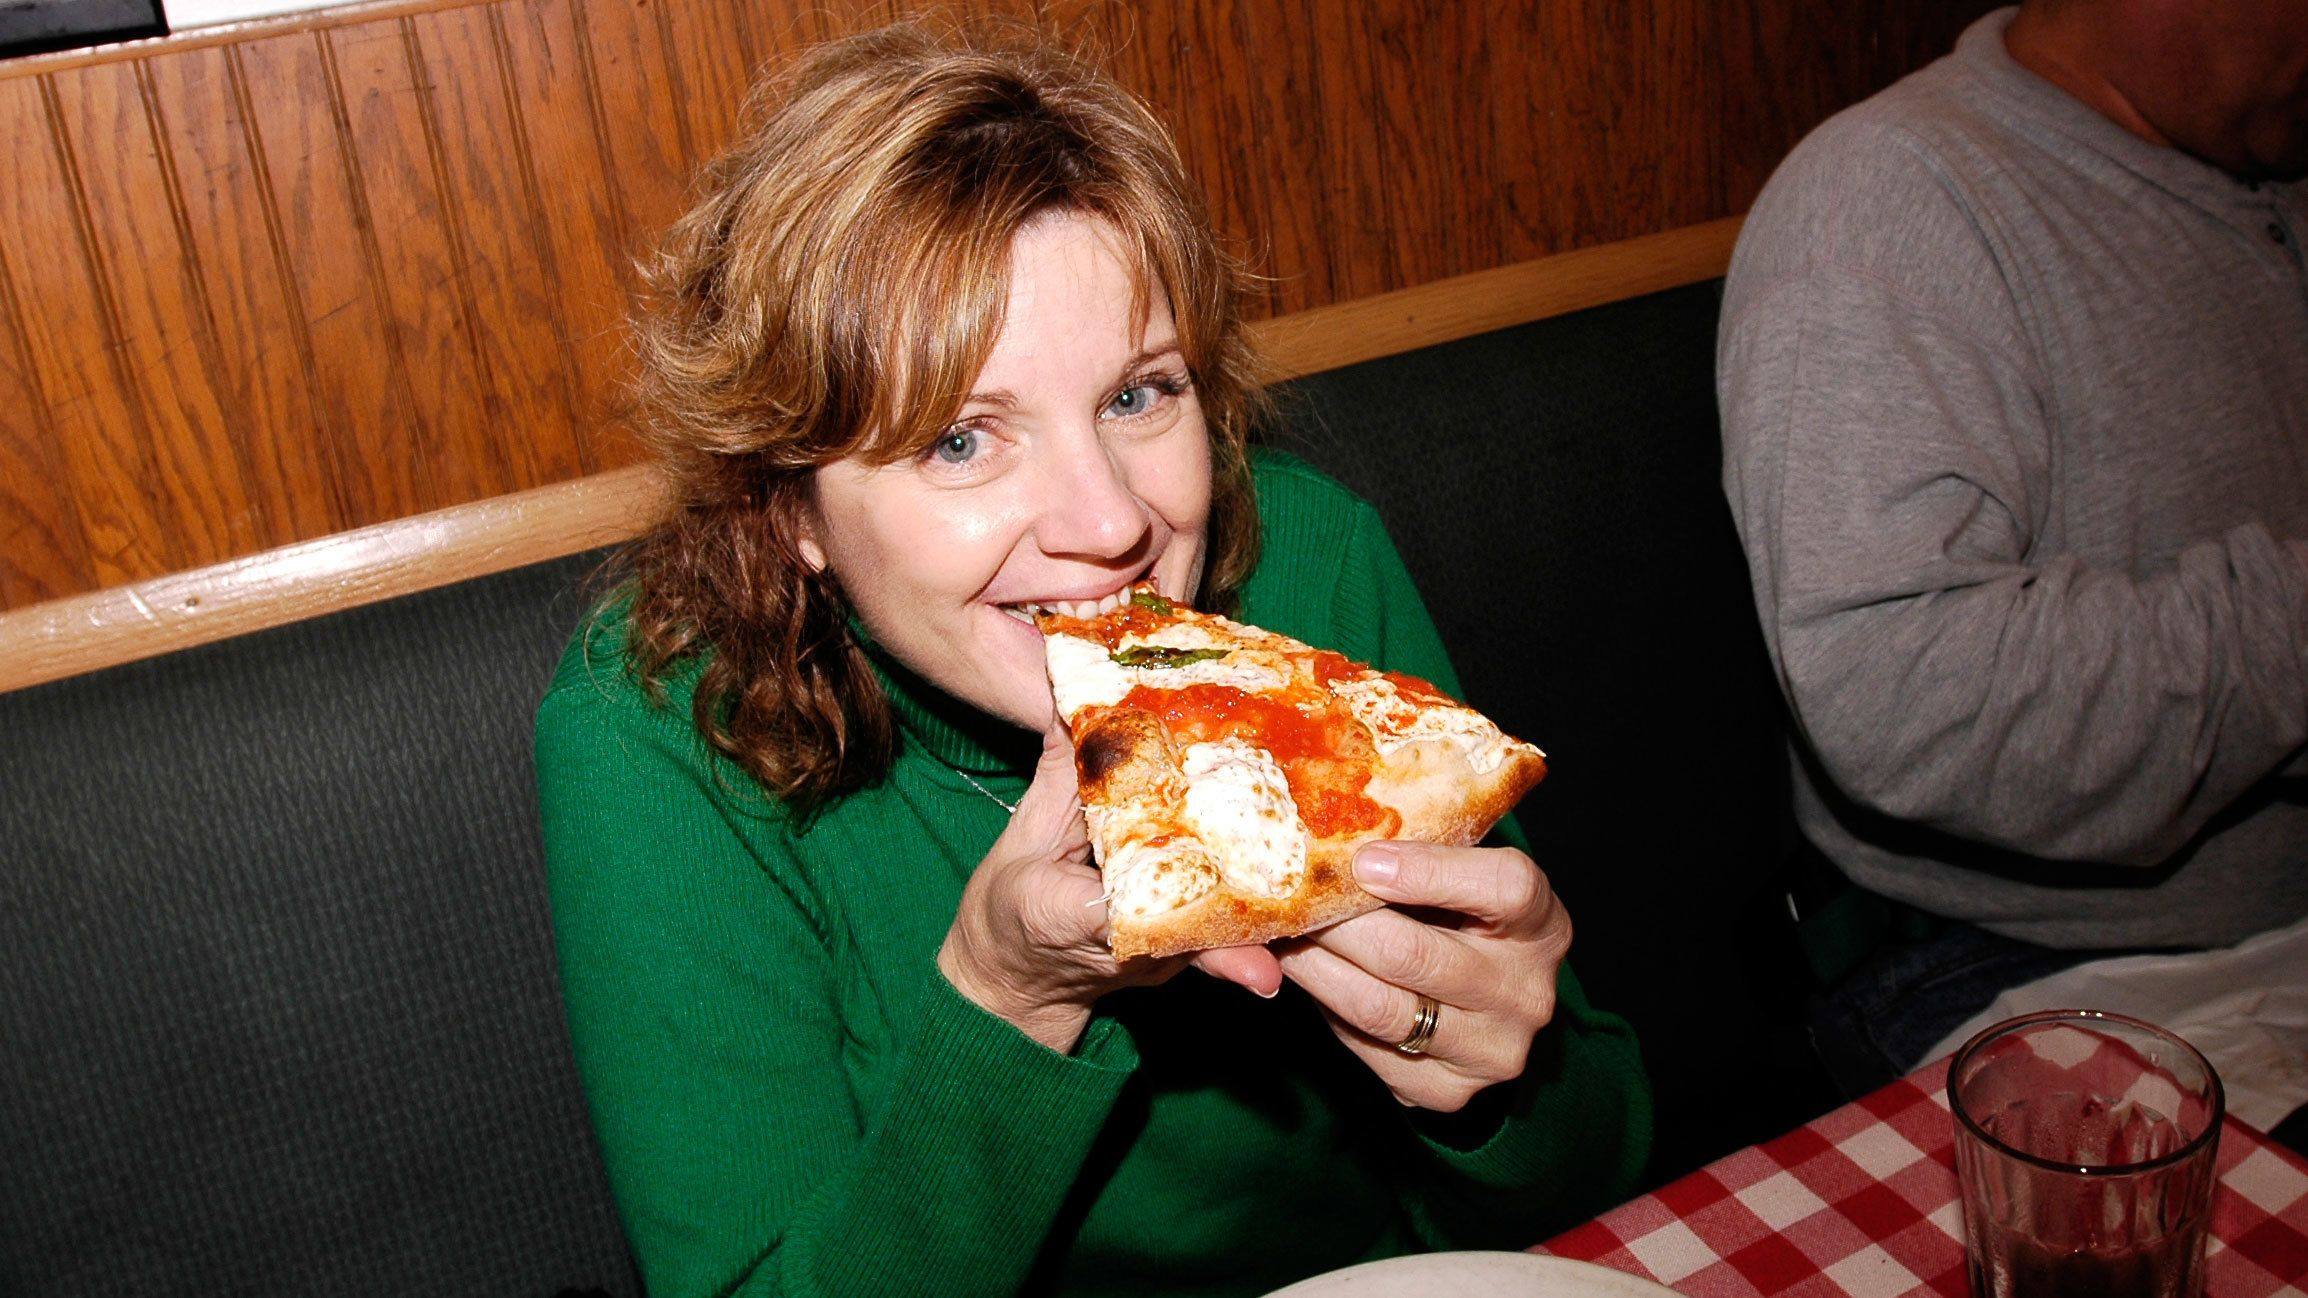 Woman eating a slice of pizza in New York